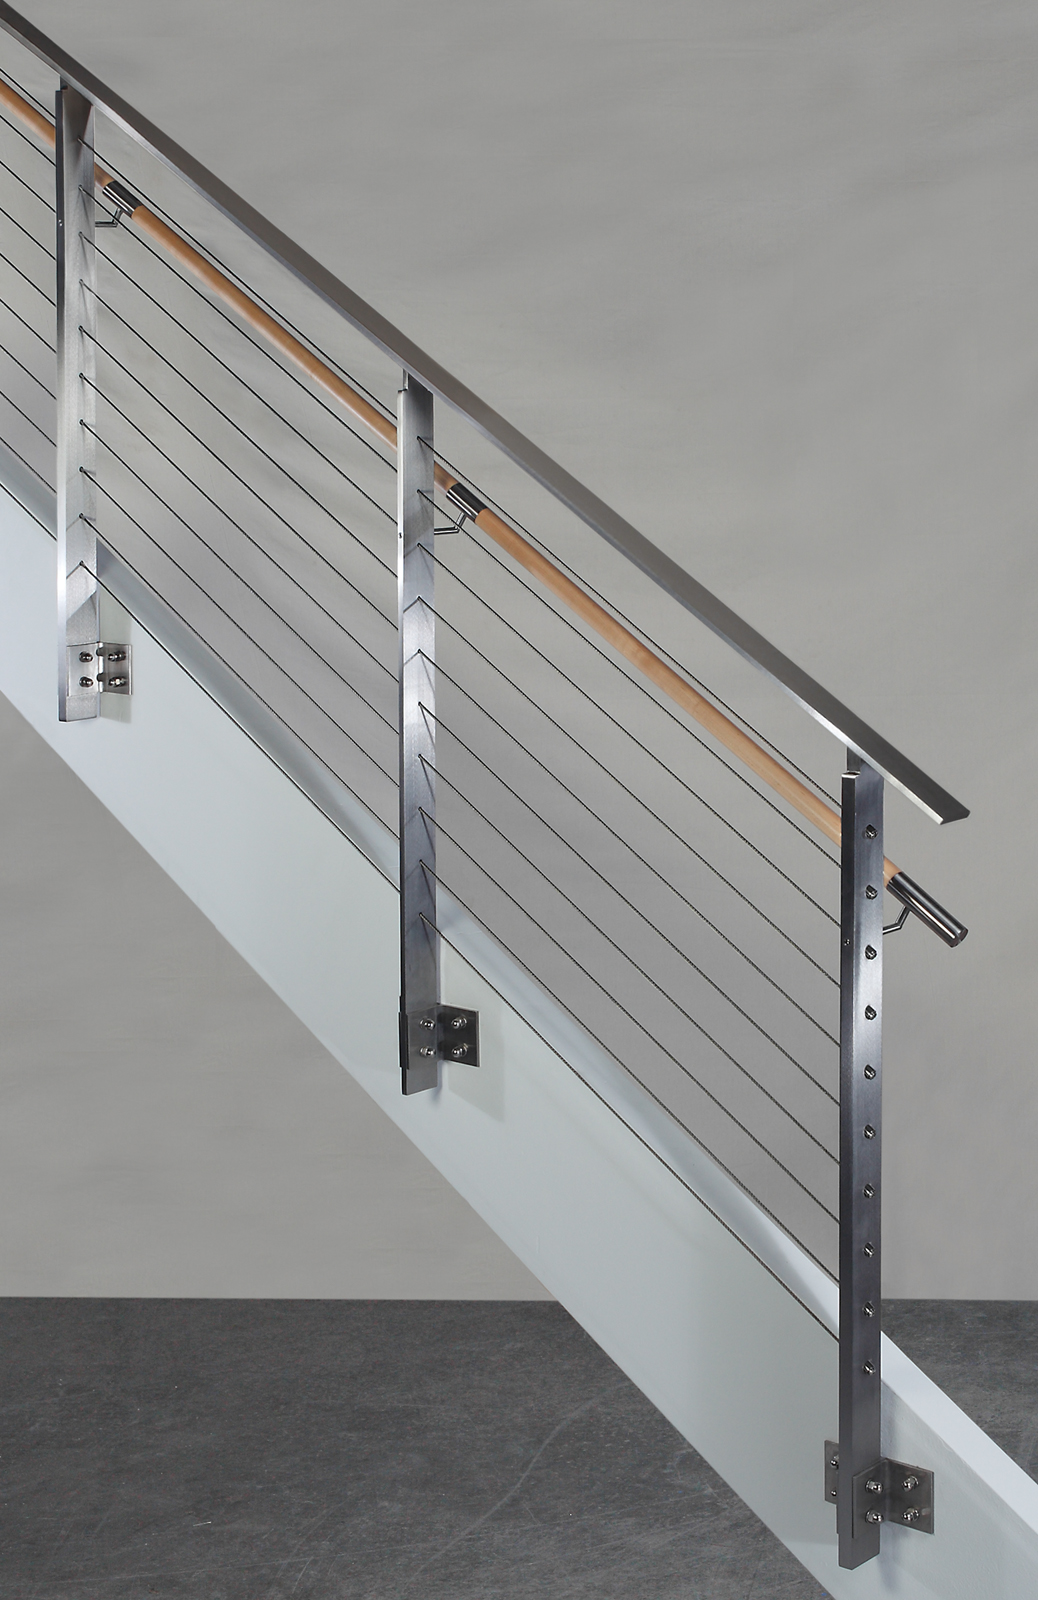 Introducing koto™ hdi railing systems